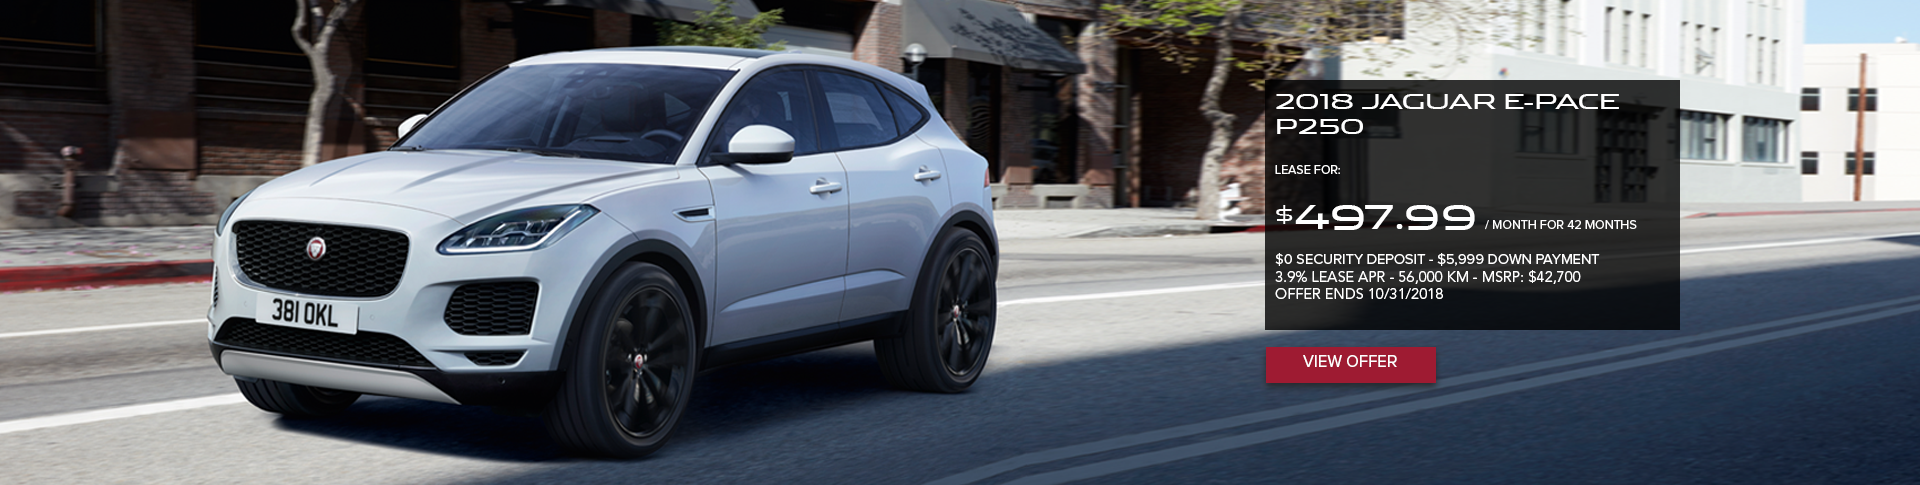 October E-PACE